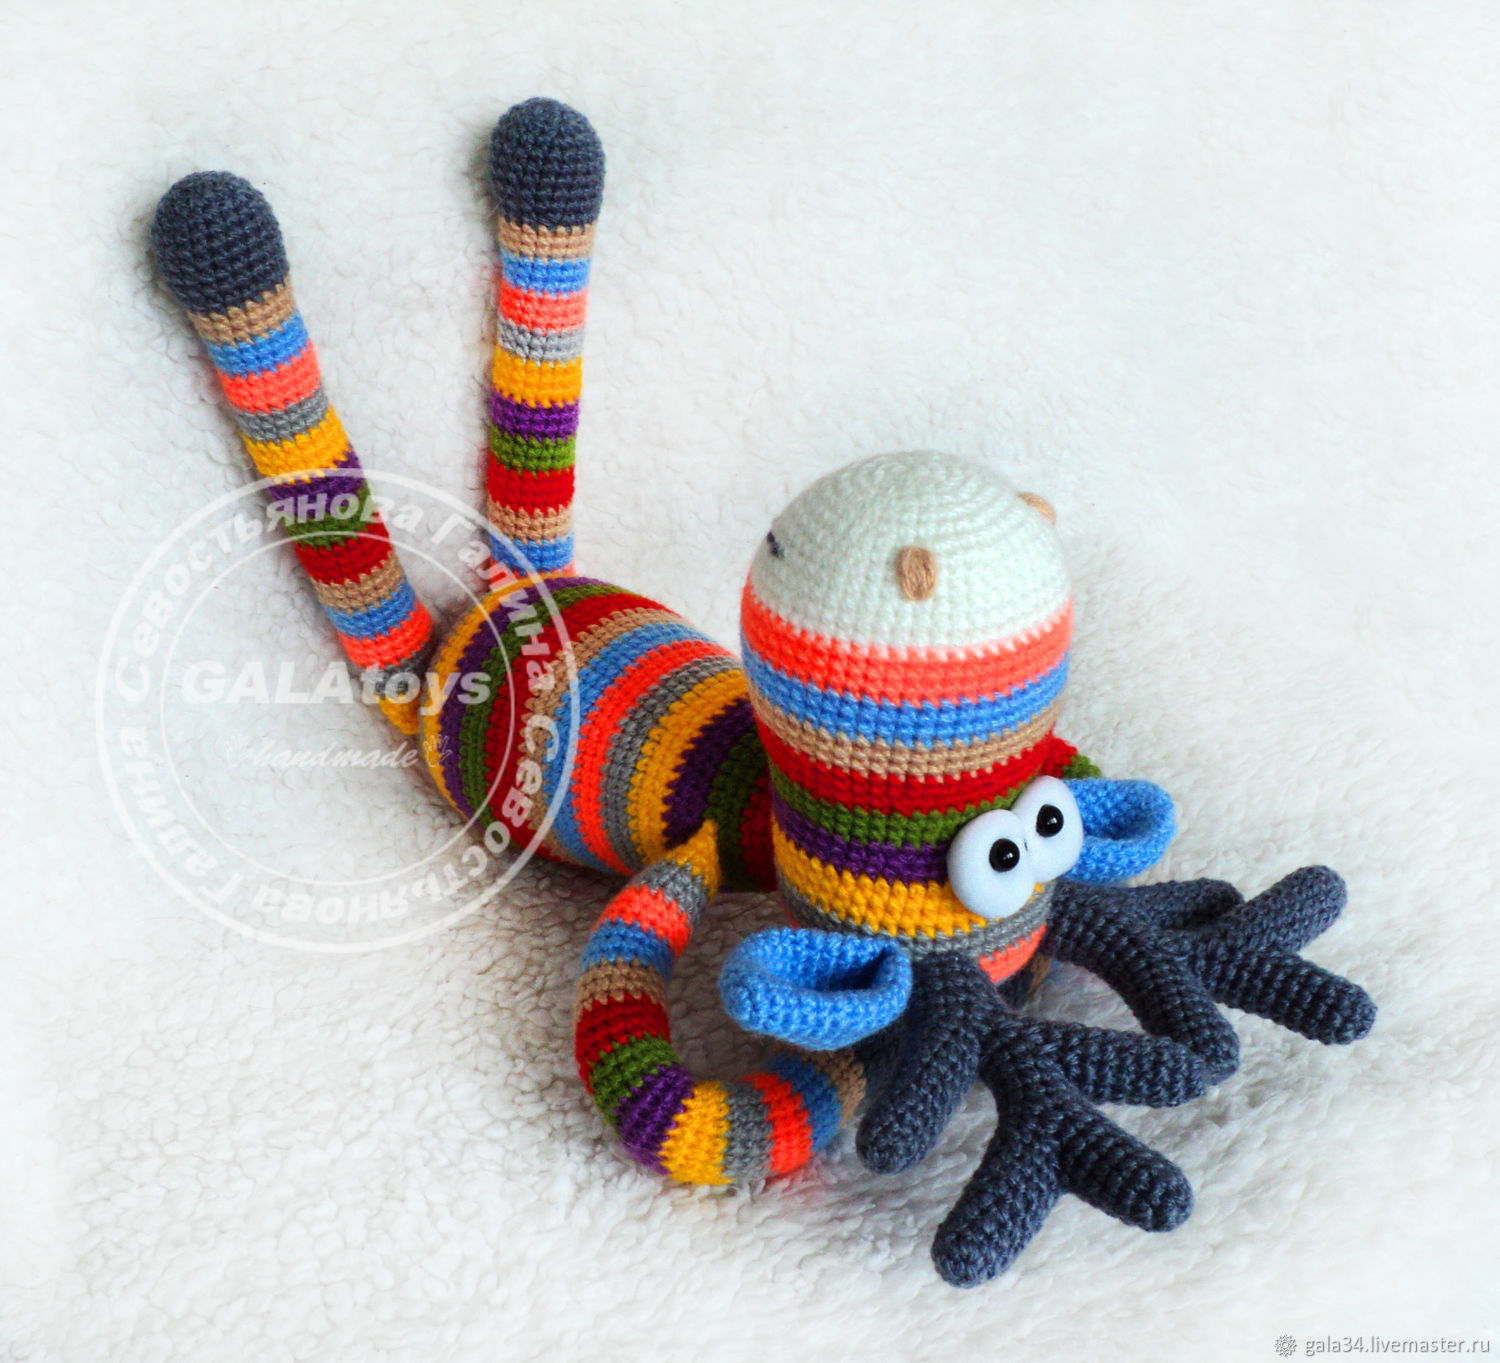 Buy Rainbow Moose knitted toy on Livemaster online shop